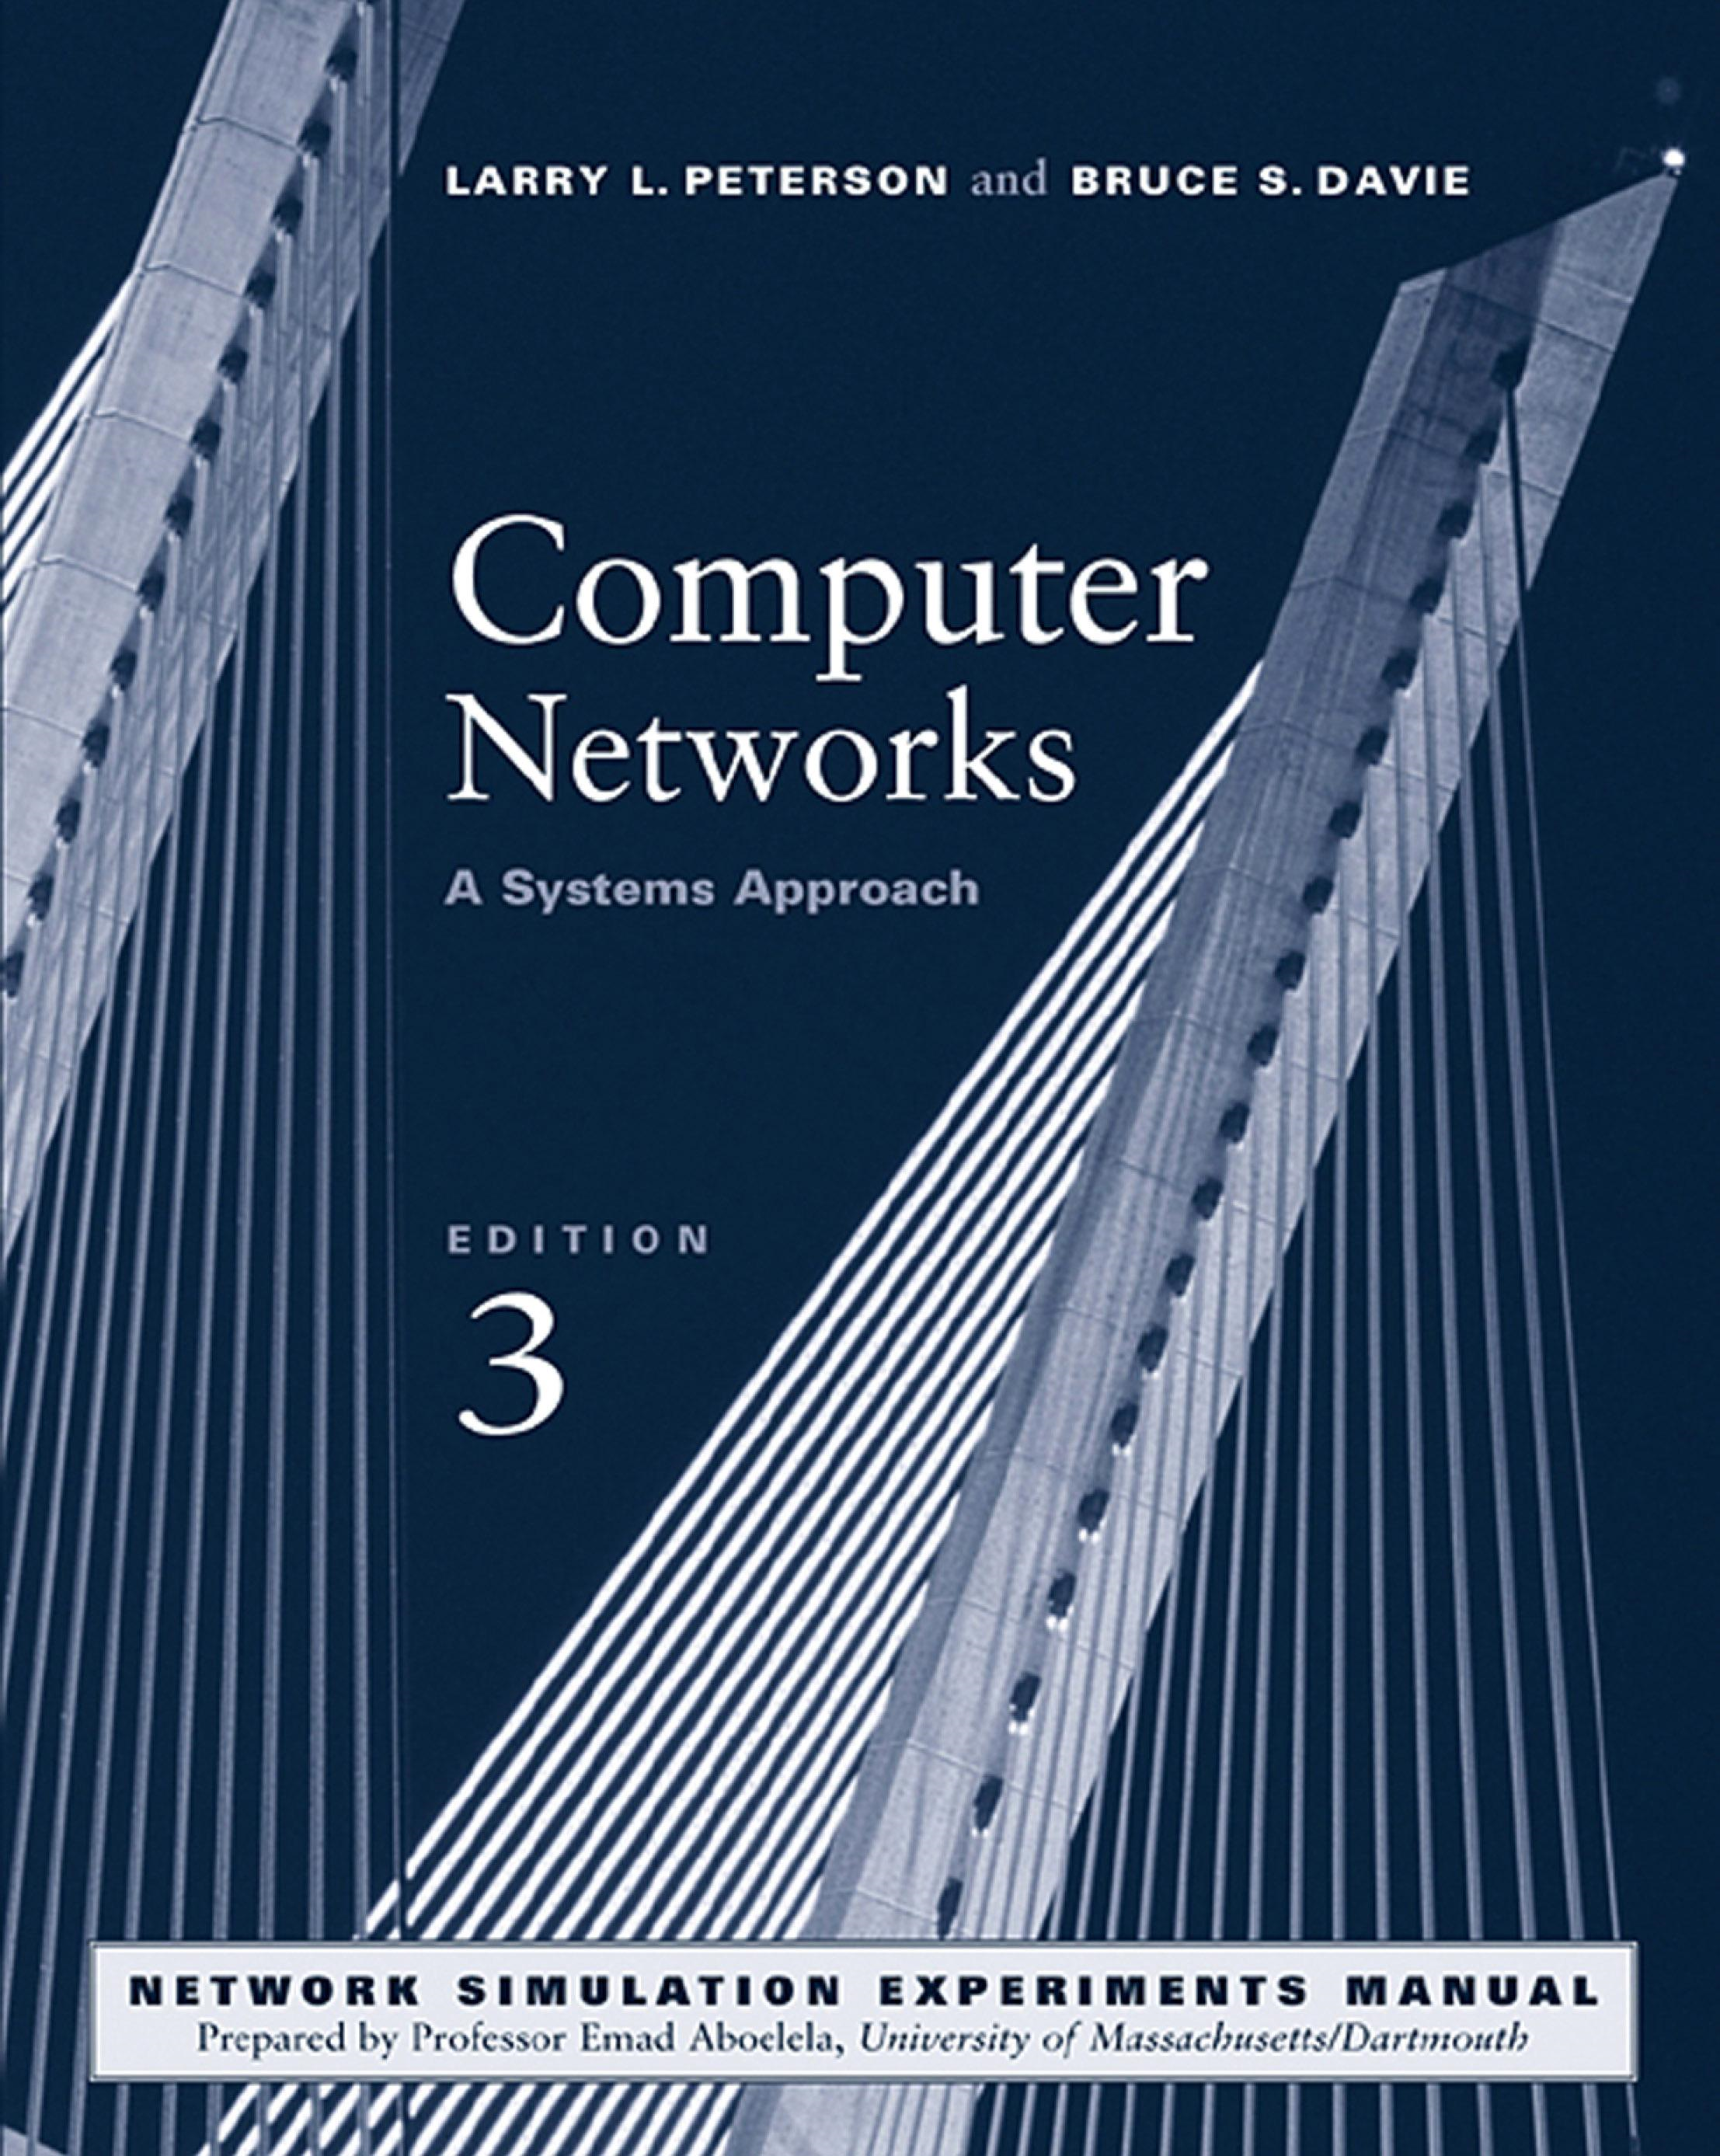 Network Simulation Experiments Manual